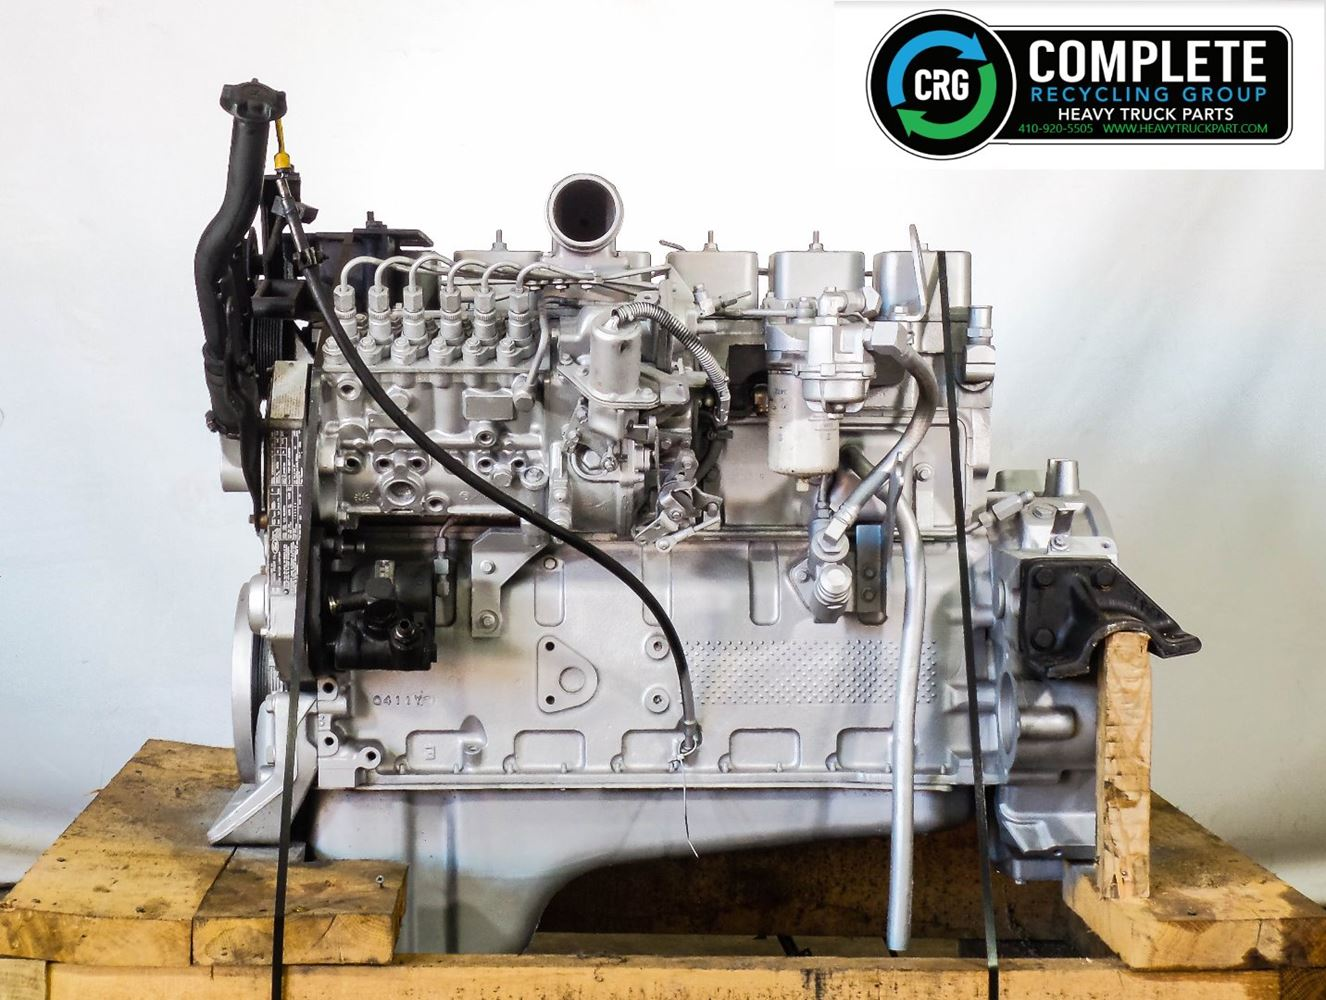 1995 CUMMINS B5.9 ENGINE ASSEMBLY TRUCK PARTS #680100